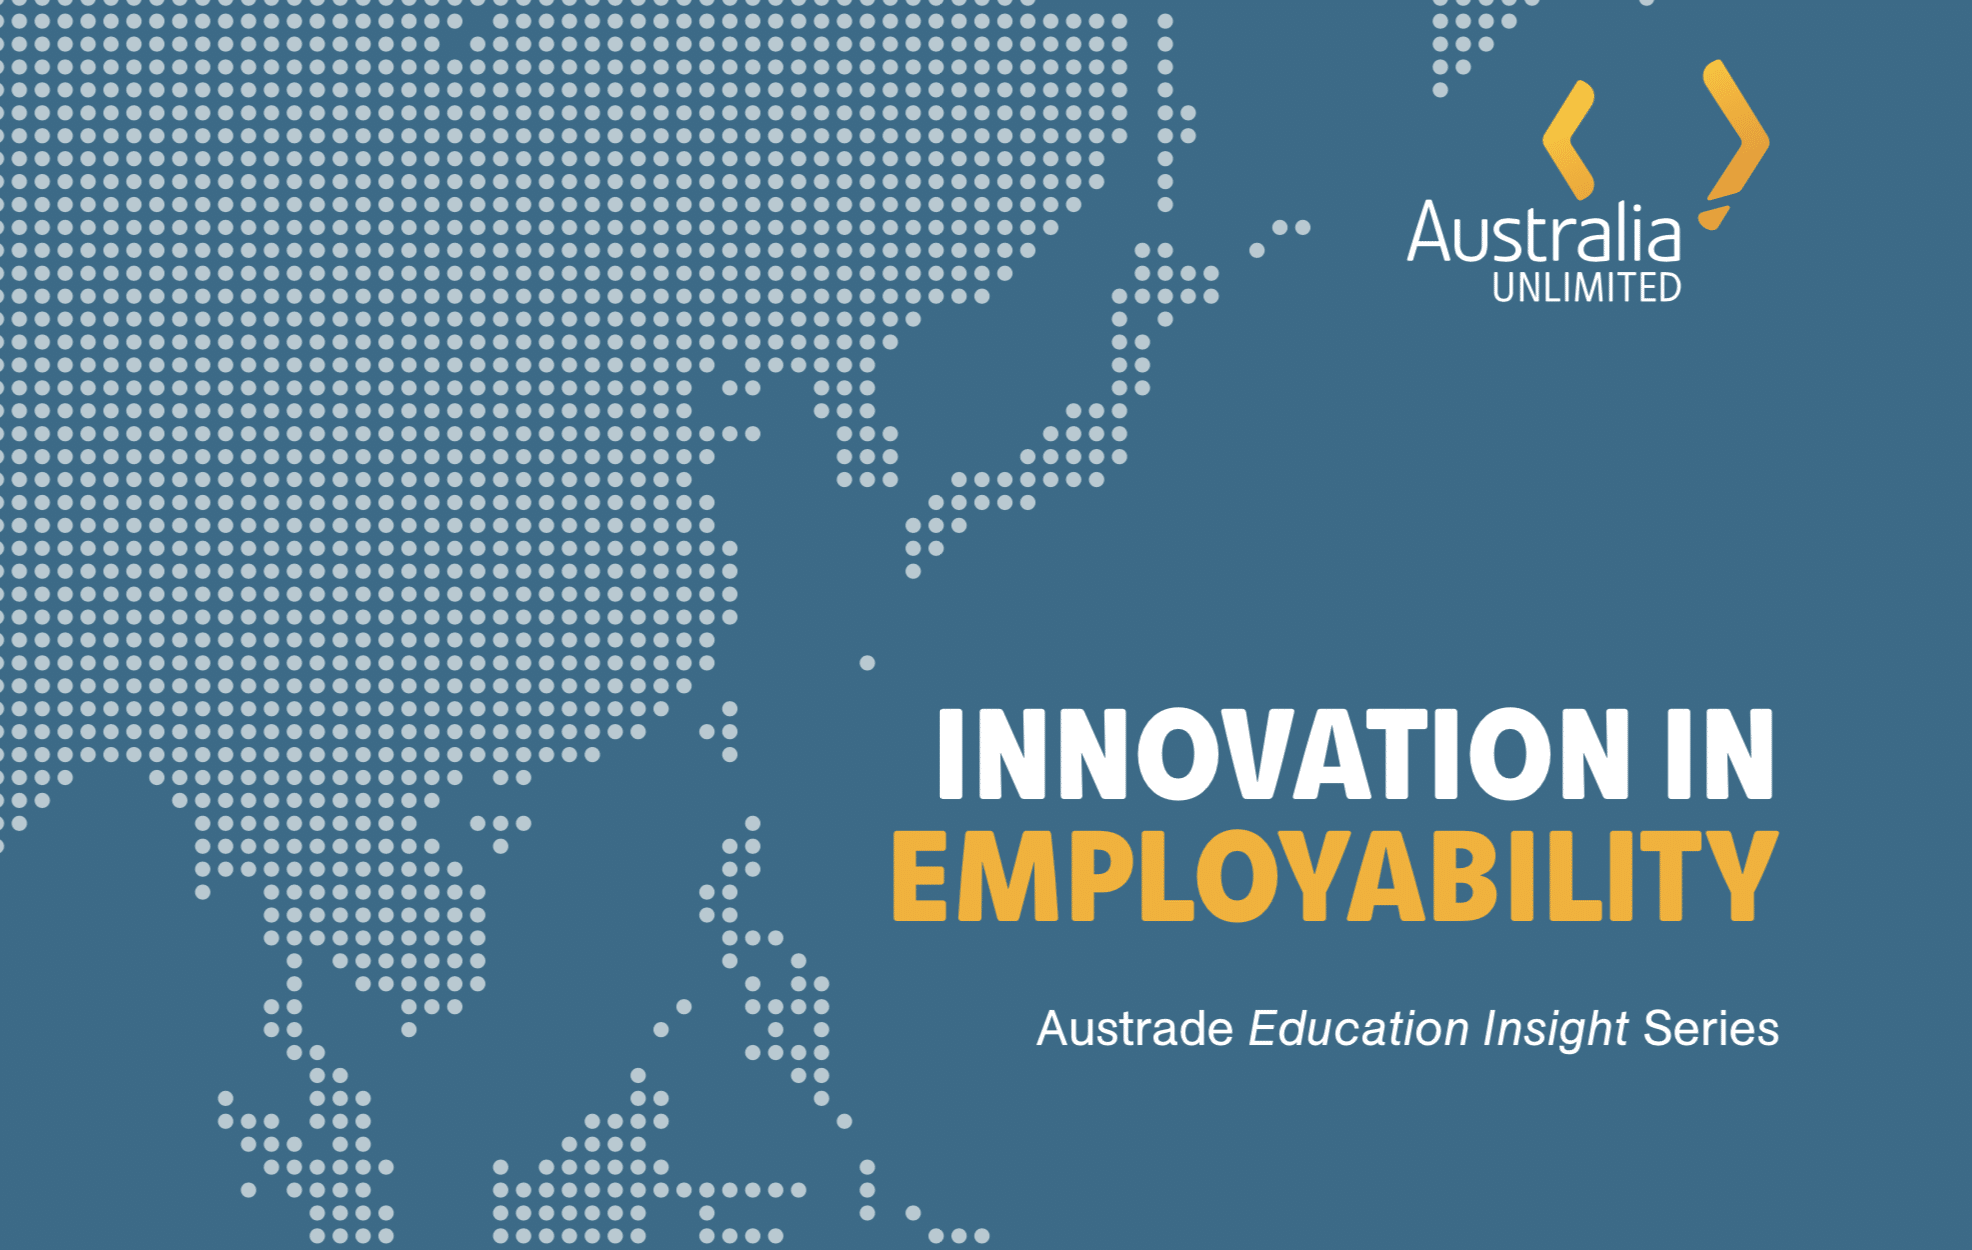 Innovation in Employability: AUSTrade Education insights series